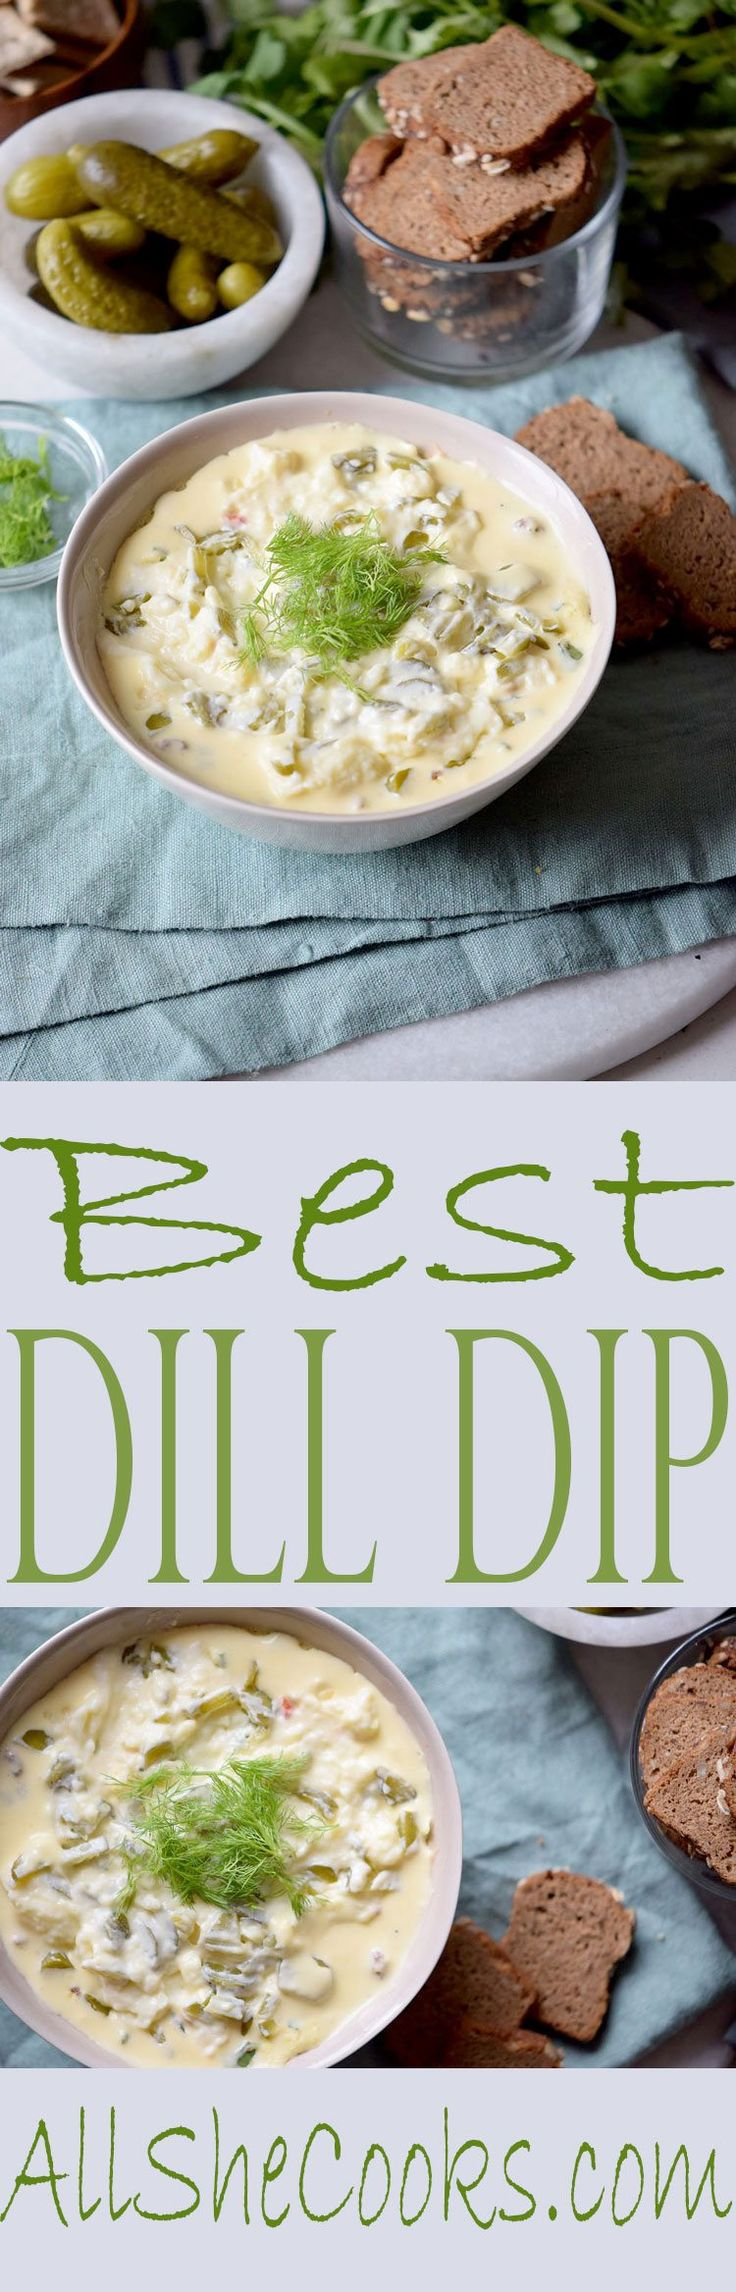 Best Dill Dip recipe is delicious and simple to make. With just a few ingredients, this appetizer dip is a winning recipe.